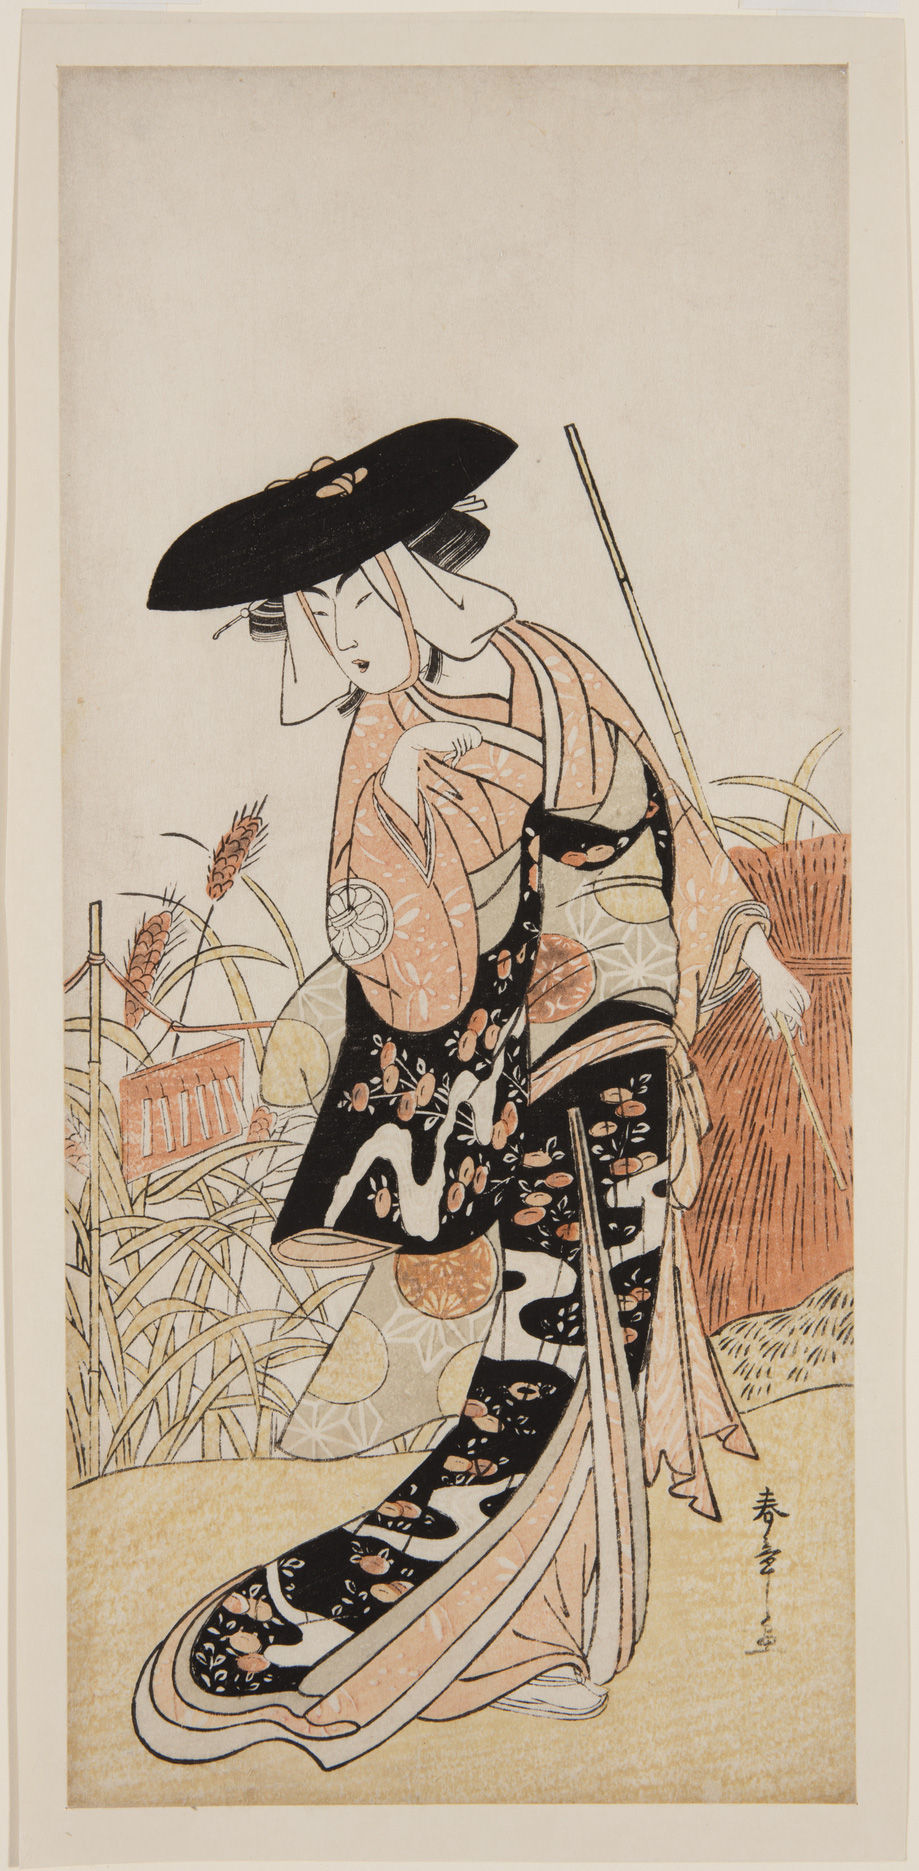 A Japanese print of an actor standing in a rural scene, looking down over the shoulder and wearing a large hat and long traditional robes.